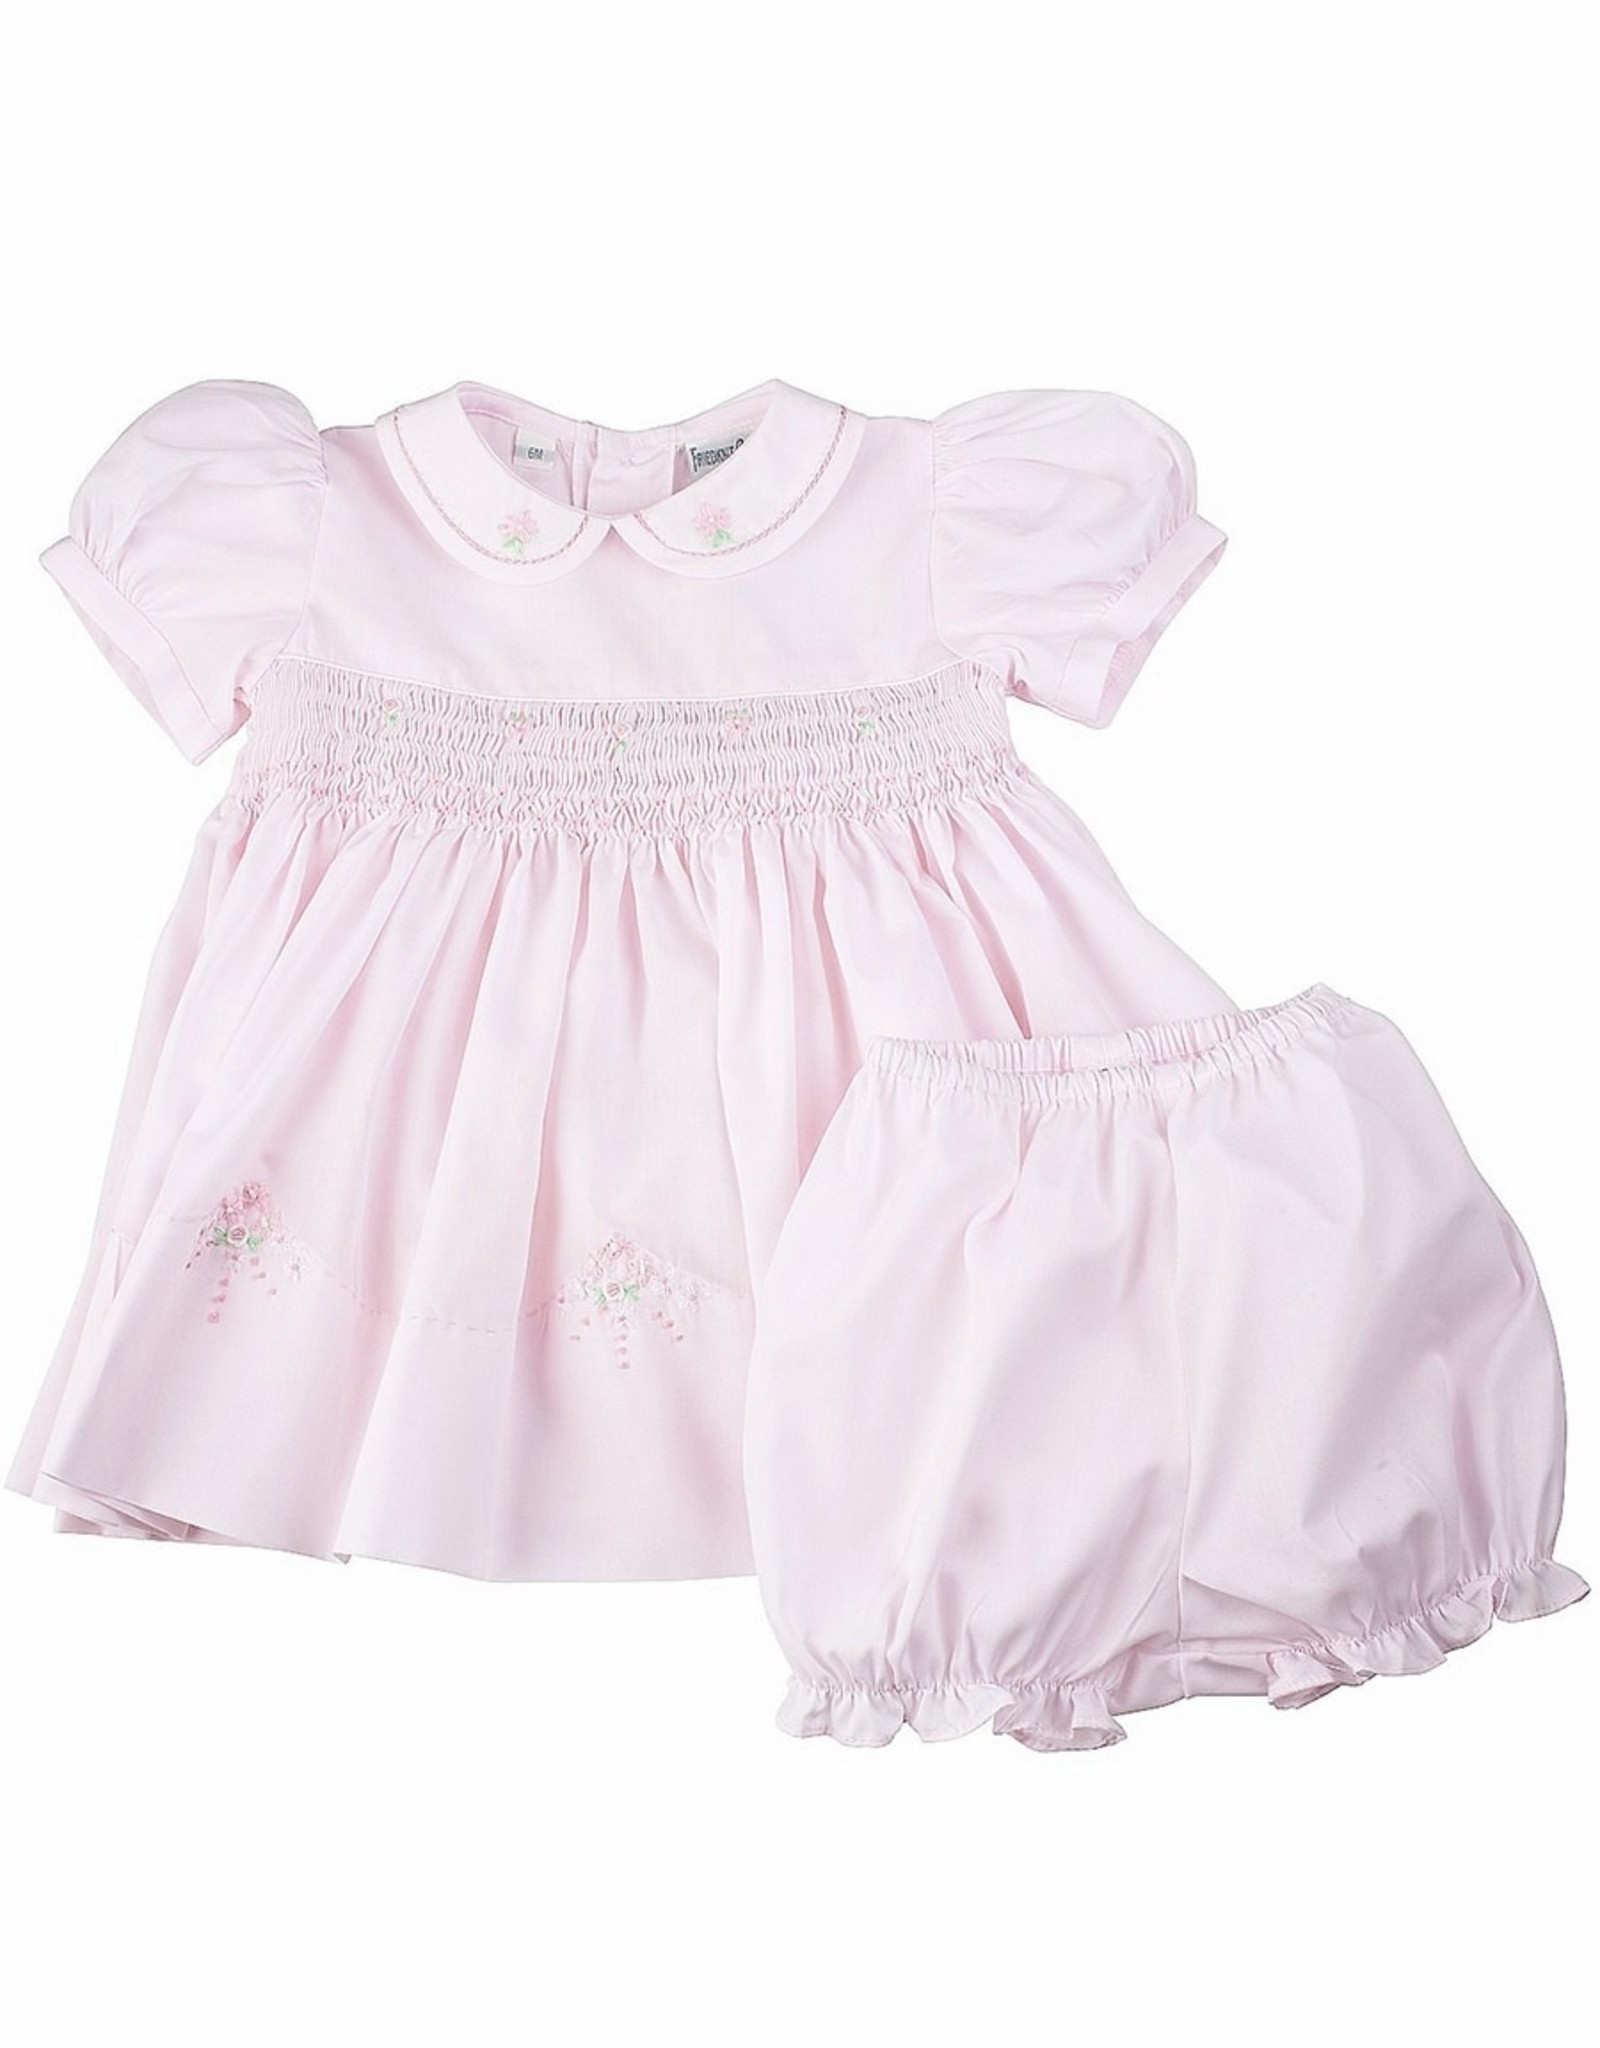 Feltman Brothers Infant Midgie Dress With Panty